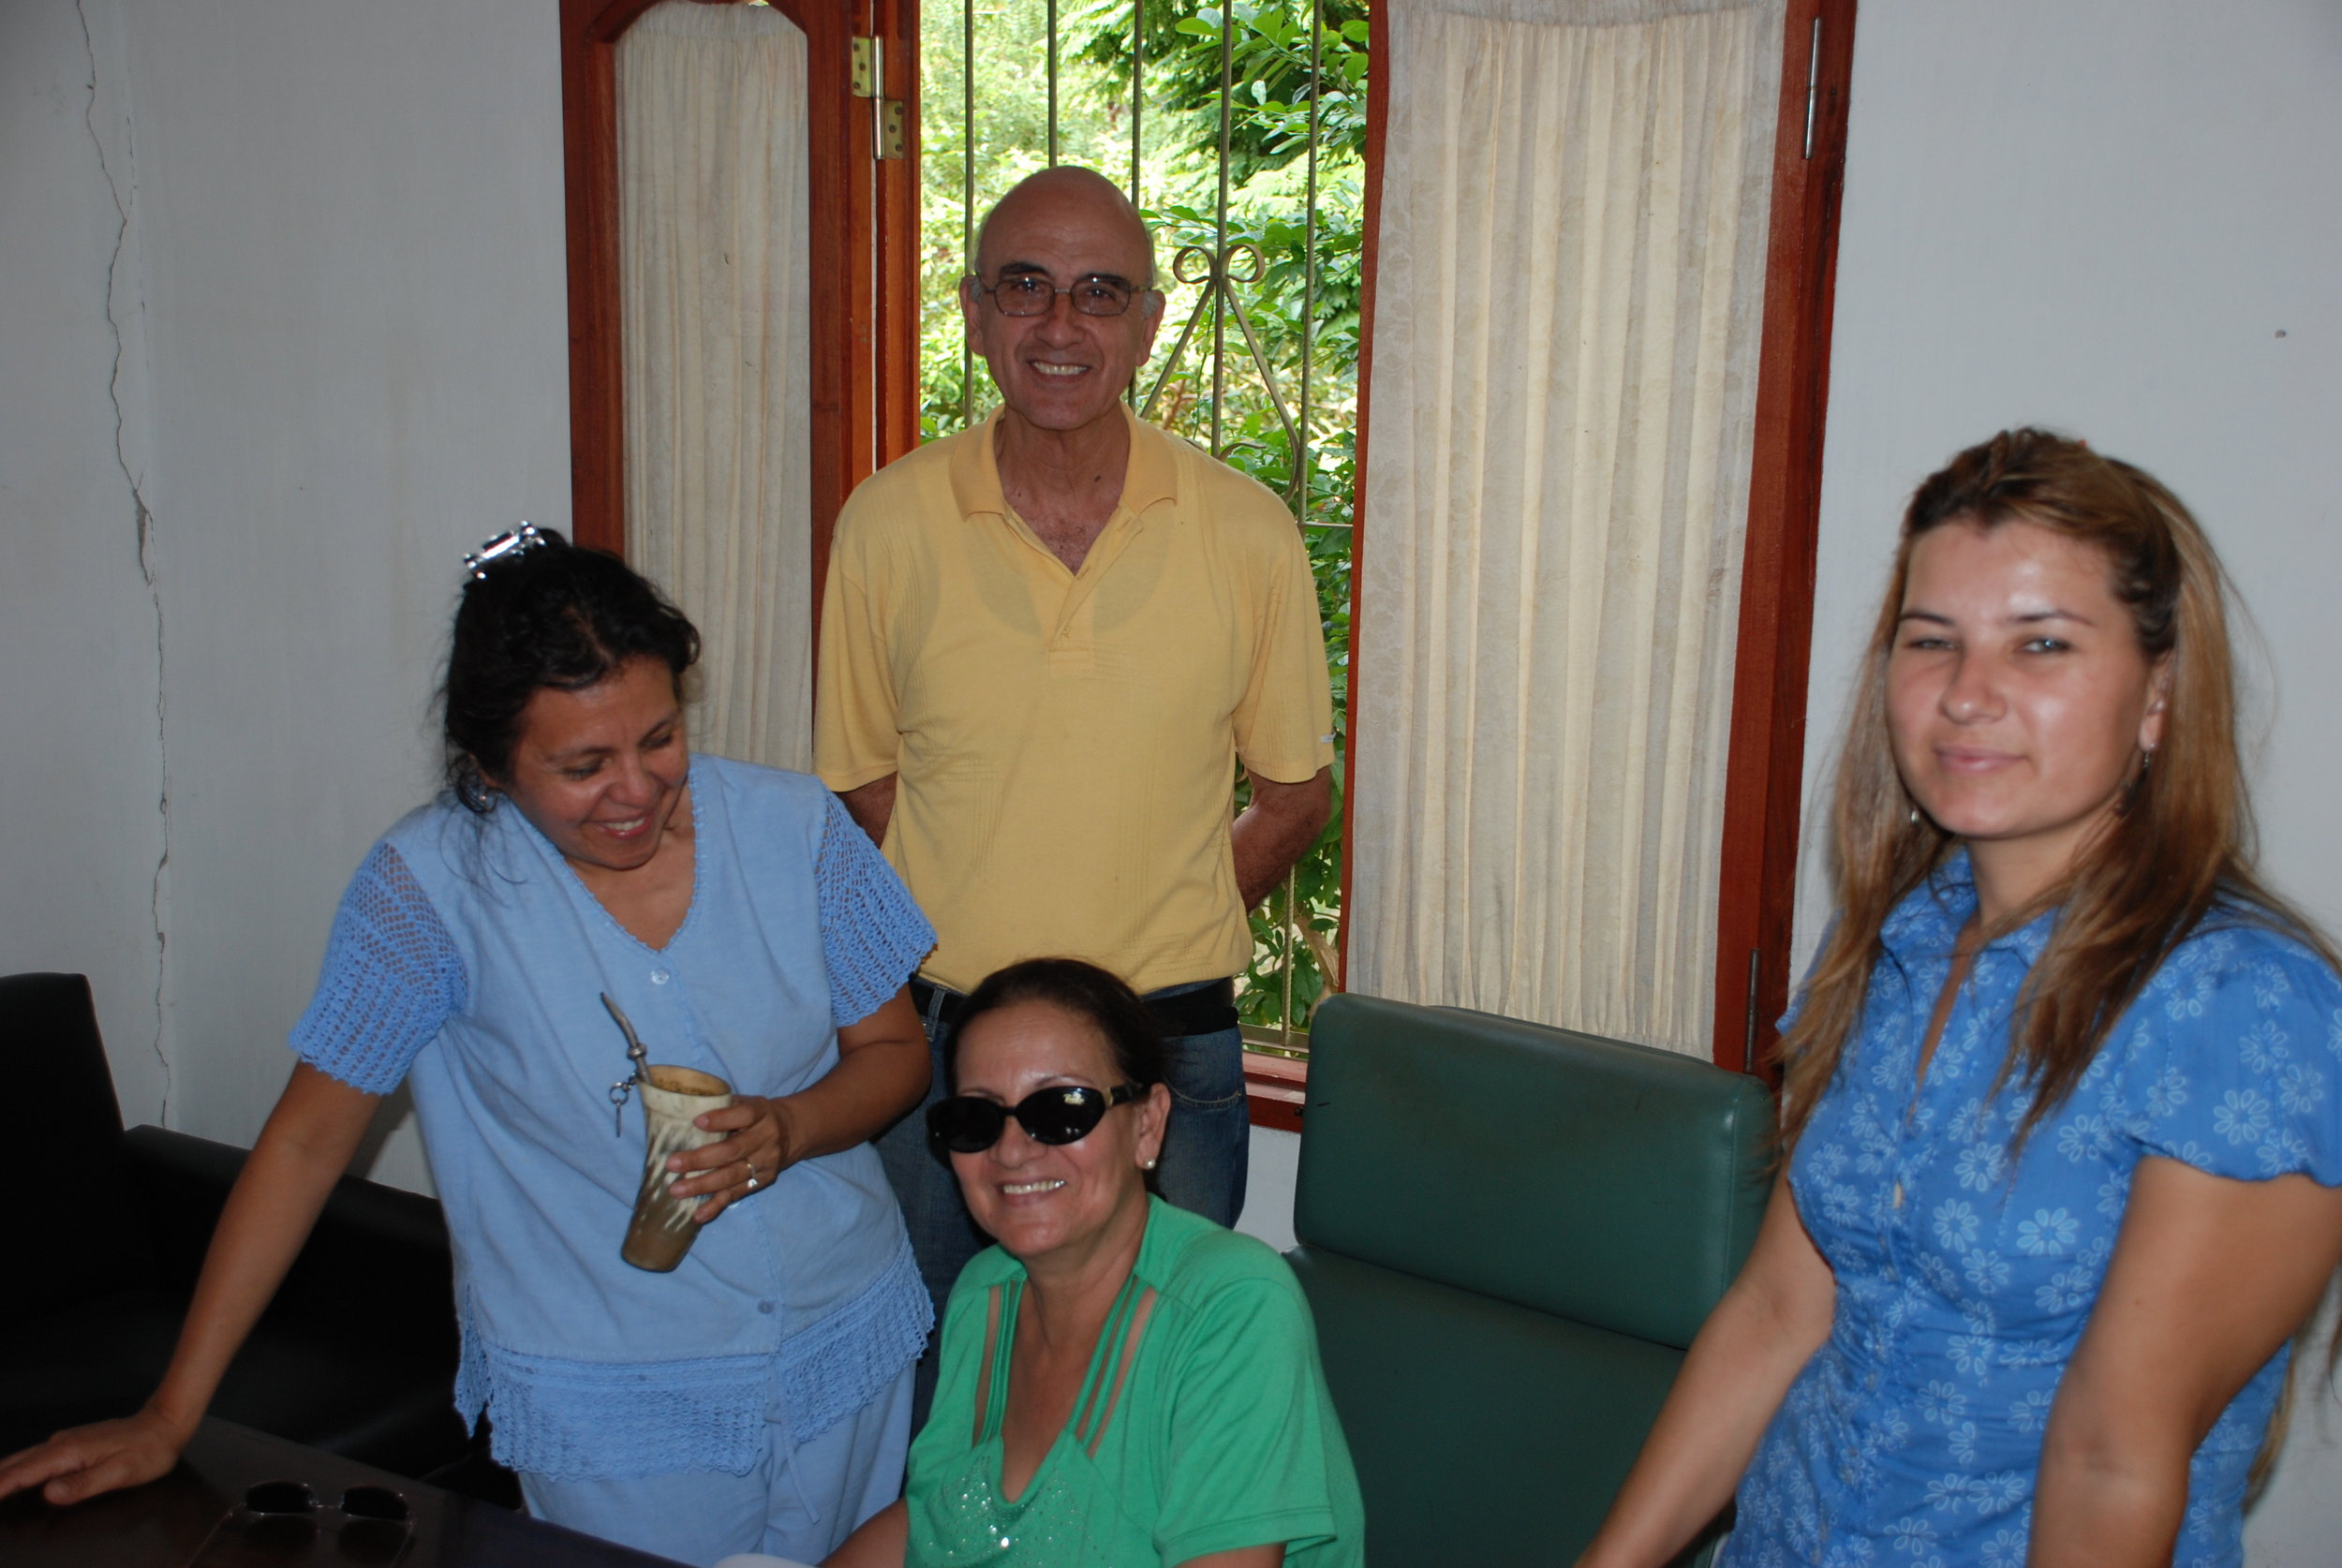 Mr Jose and Mrs Angelica Finestra, supporters of the hospital, with Dr. Isidora Guzman, Coordinator of Centro De Salud de Tobati